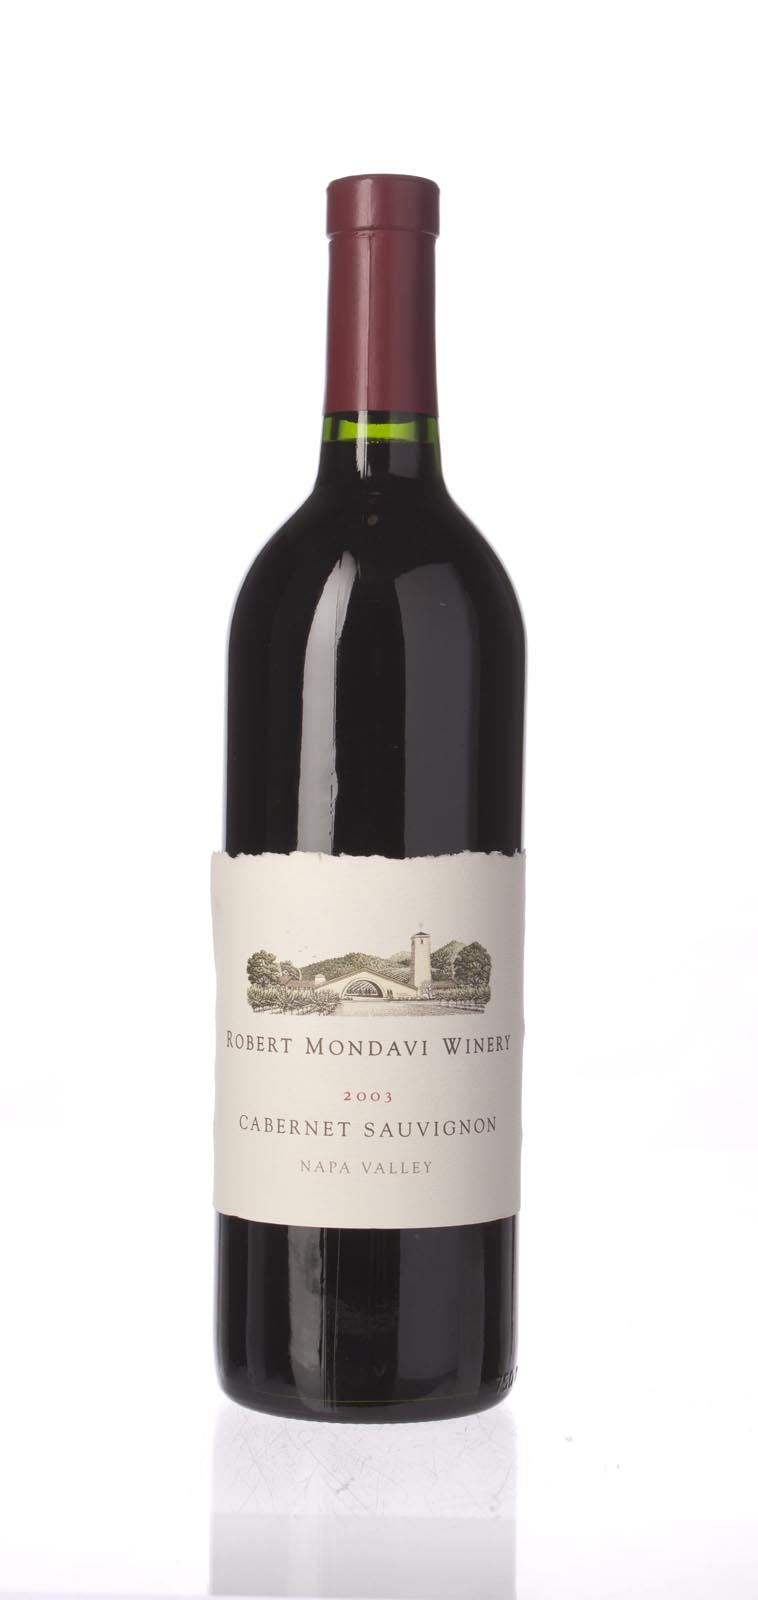 Robert Mondavi Cabernet Sauvignon Napa Valley 2003, 750mL (WA90) from The BPW - Merchants of rare and fine wines.